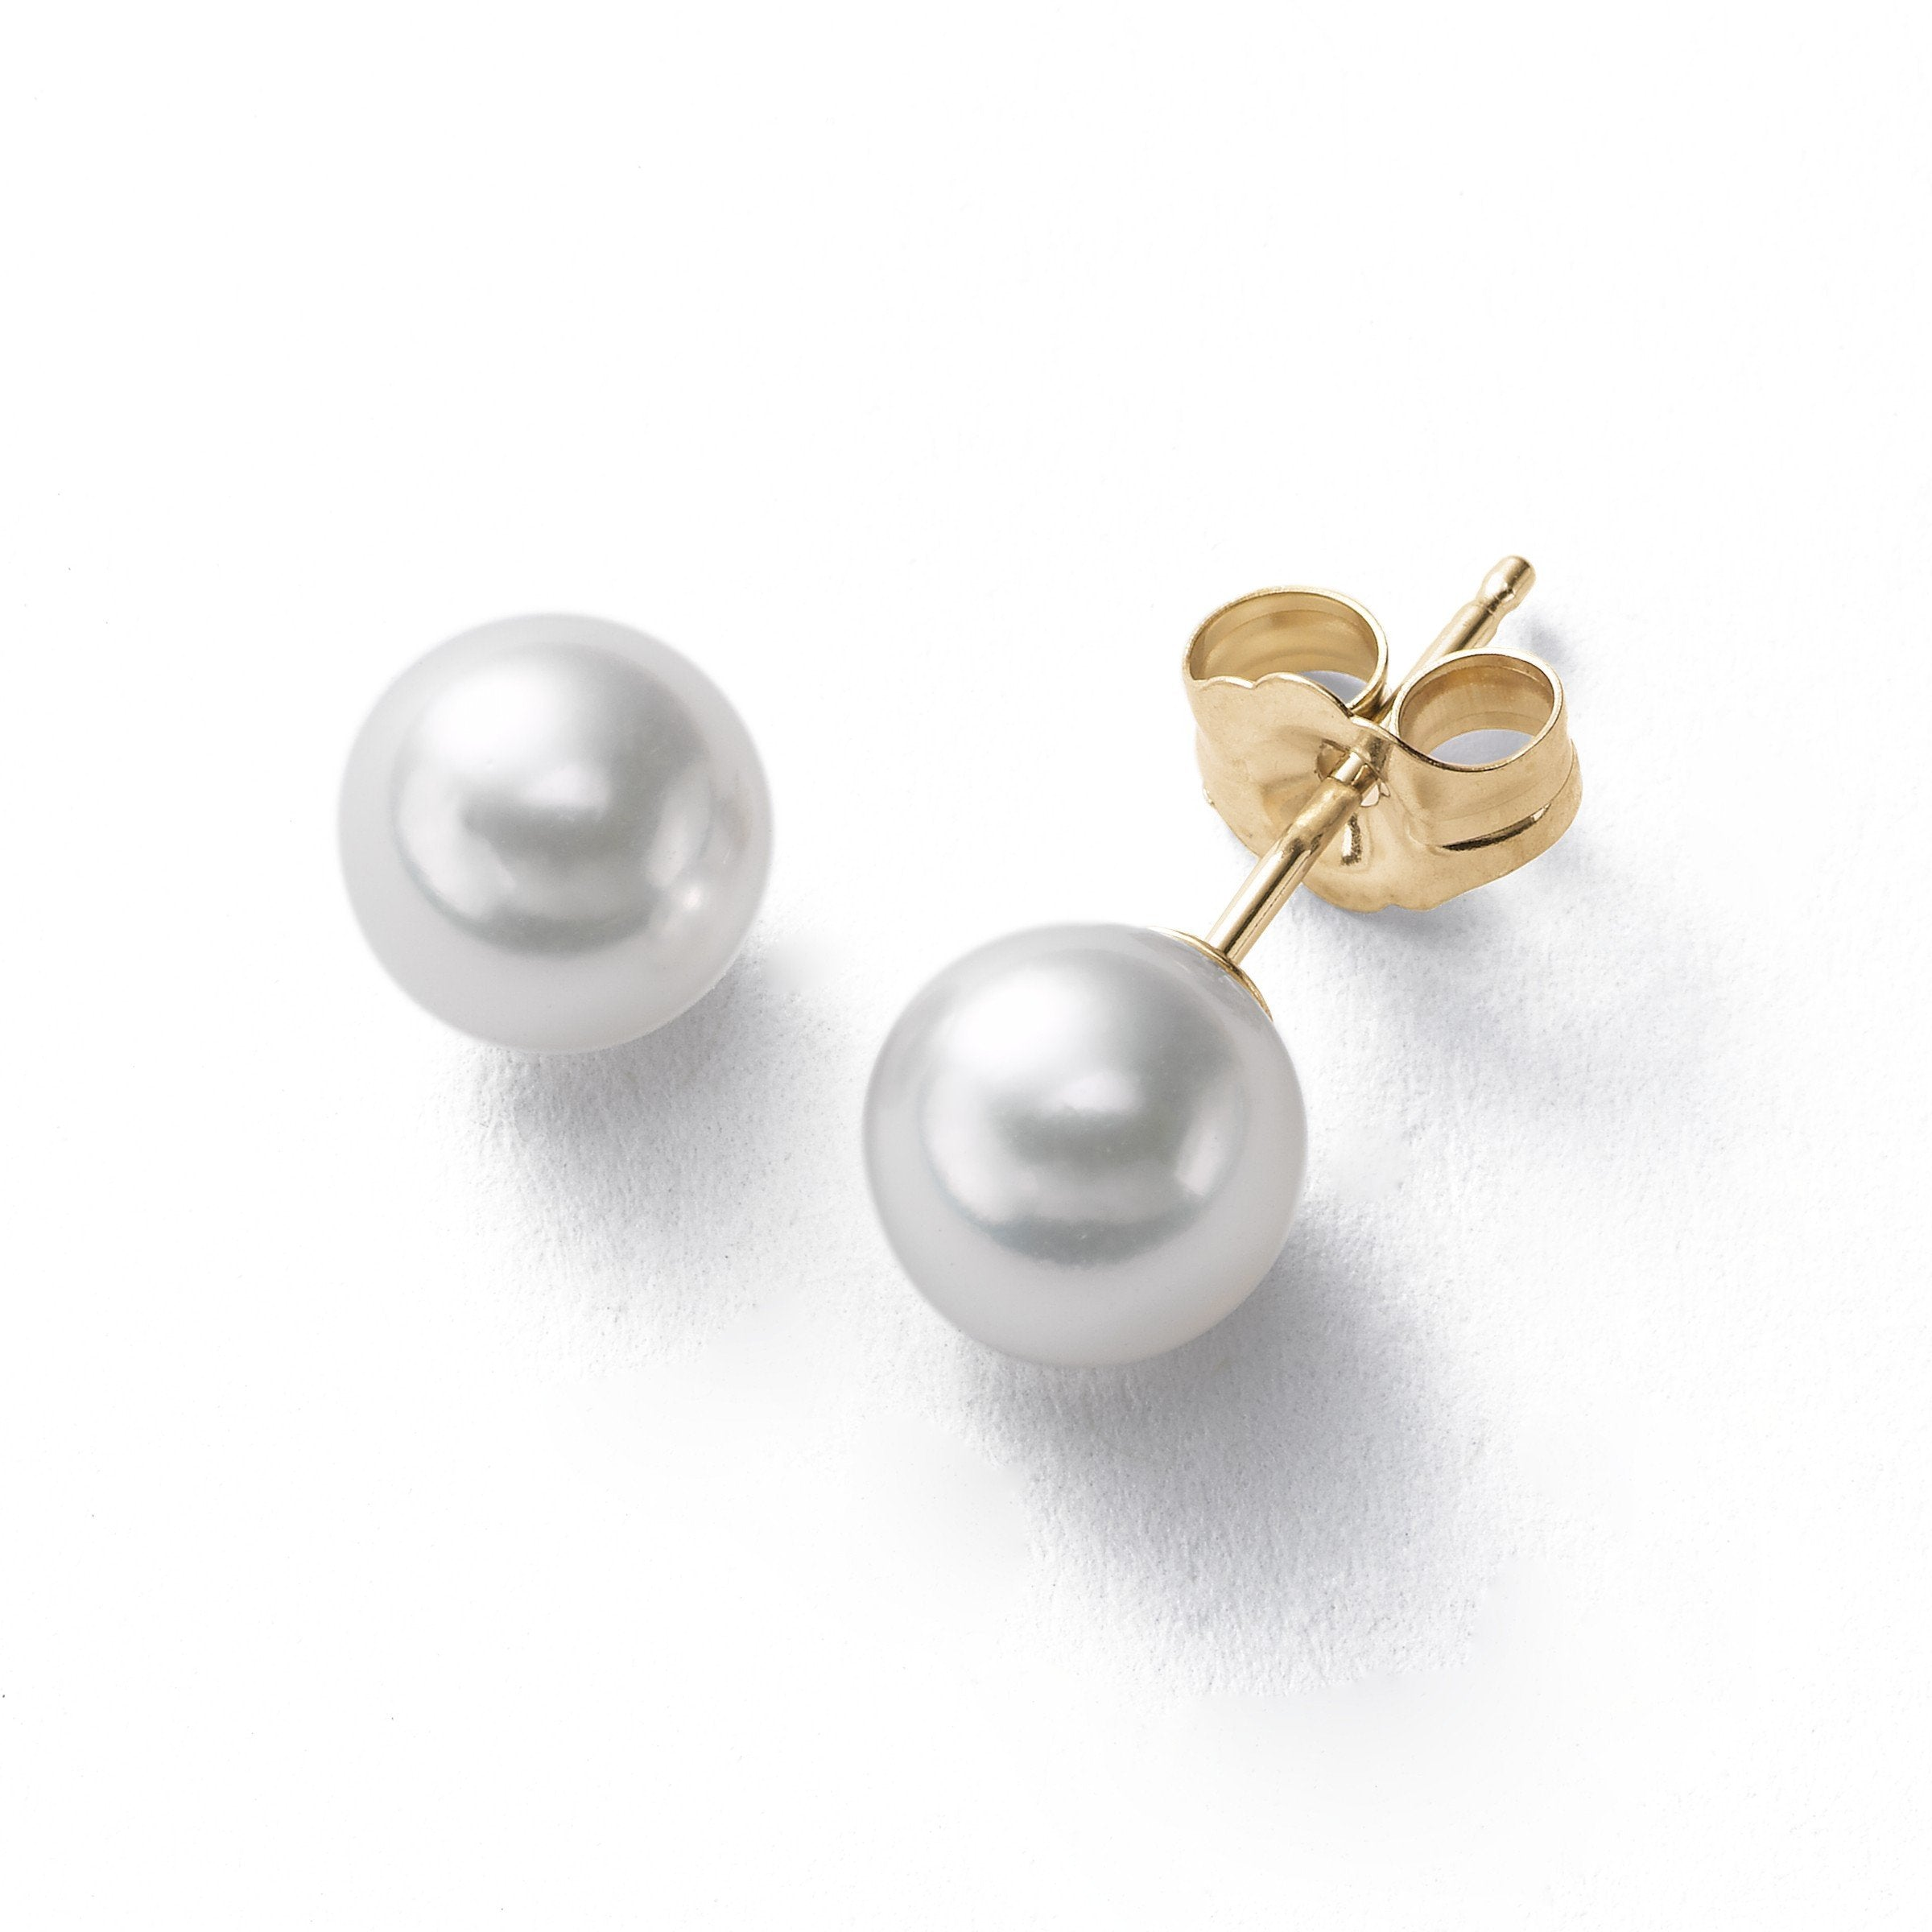 Classic Cultured Akoya Pearl Stud Earrings, 7.5 MM, 14K Gold